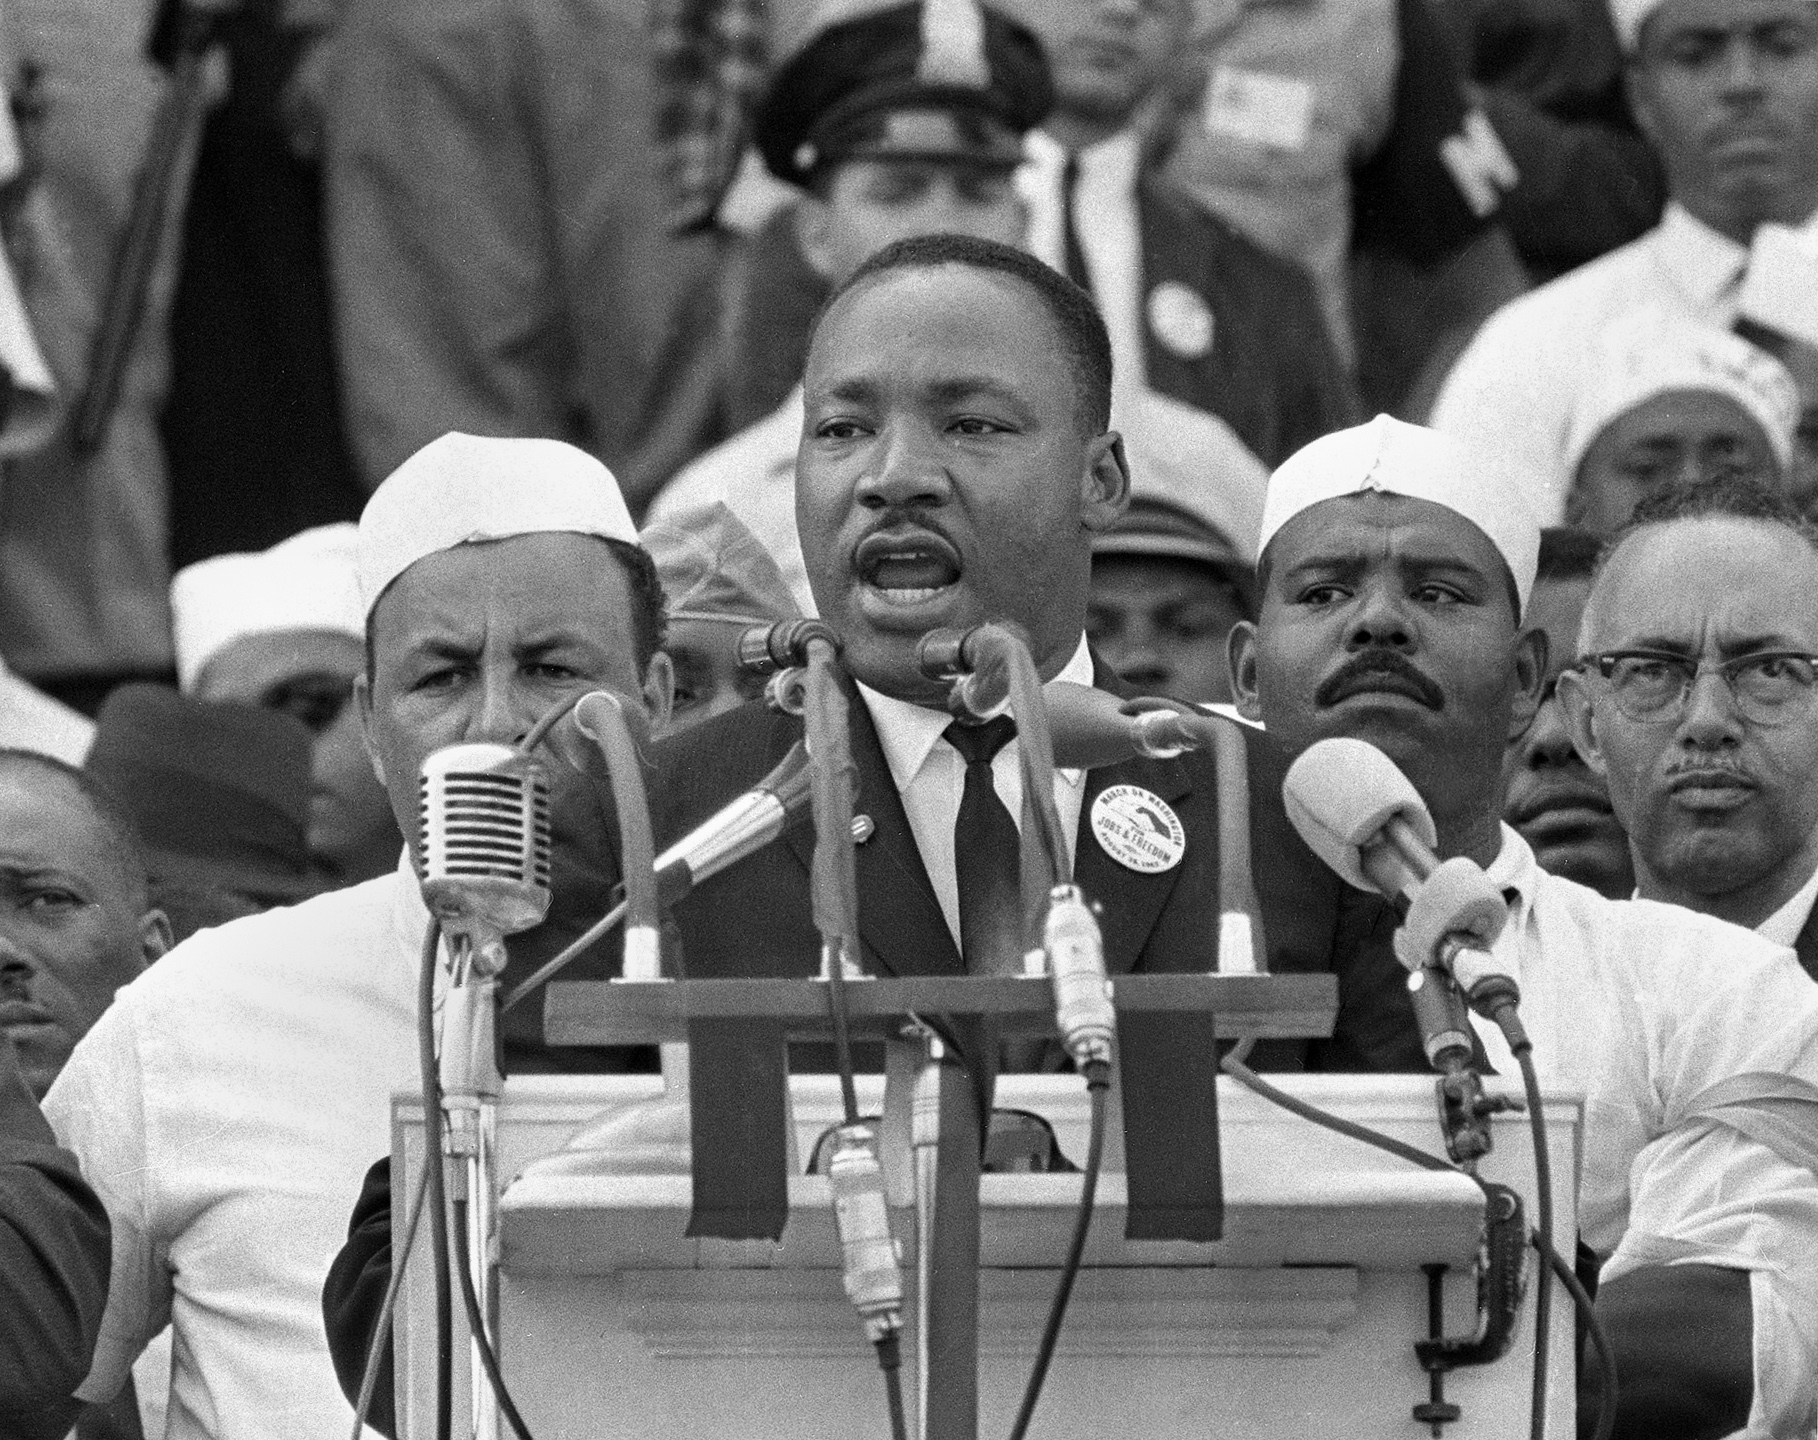 """On Aug. 28, 1963, the Rev. Martin Luther King Jr. addressed marchers in Washington, D.C., with his """"I Have a Dream"""" speech, which most television of the day did not cover live."""